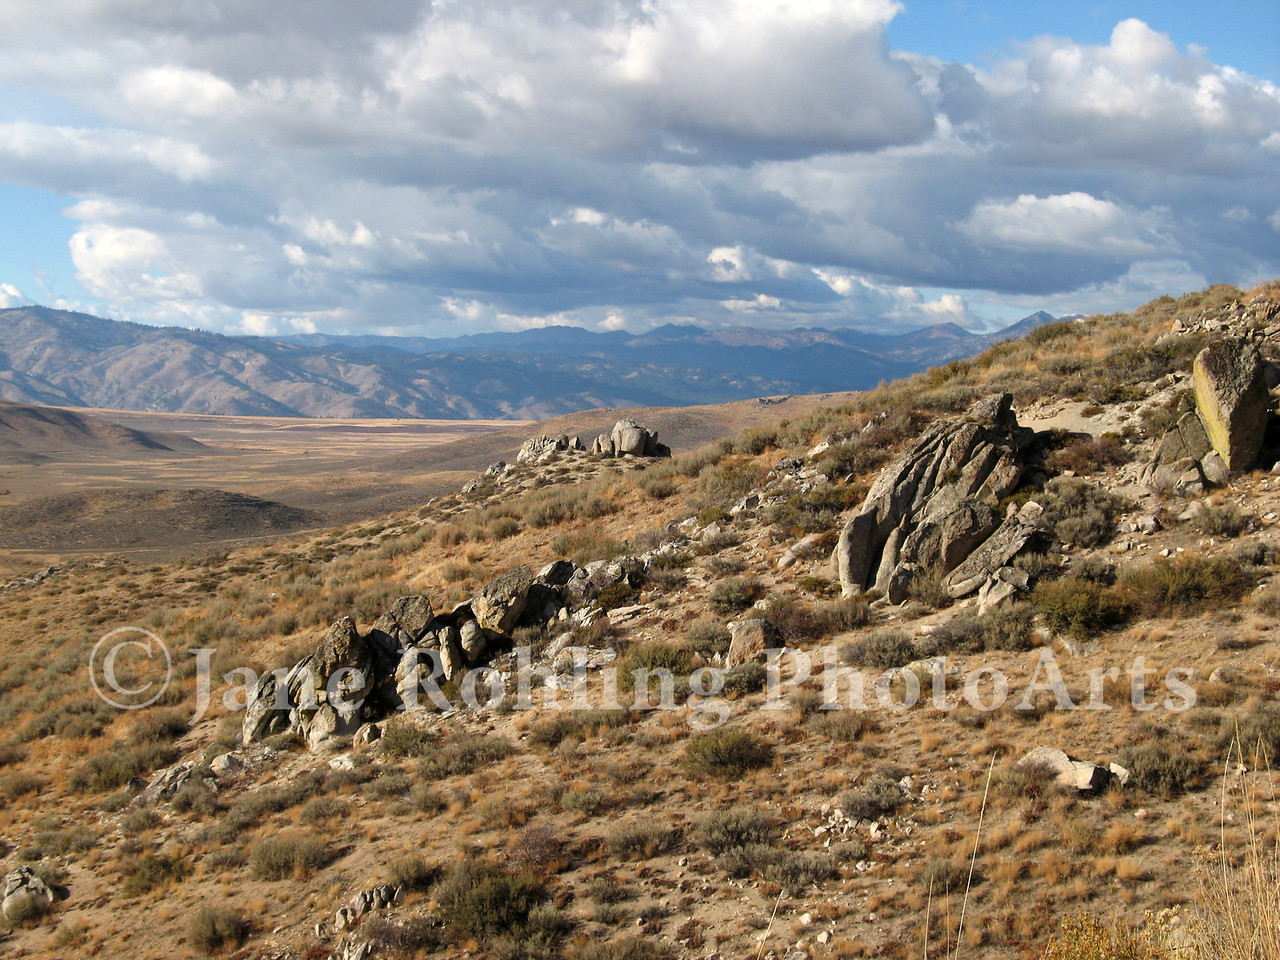 Granite outcrops in the landscape along Highway 20, Elmore County, Idaho.